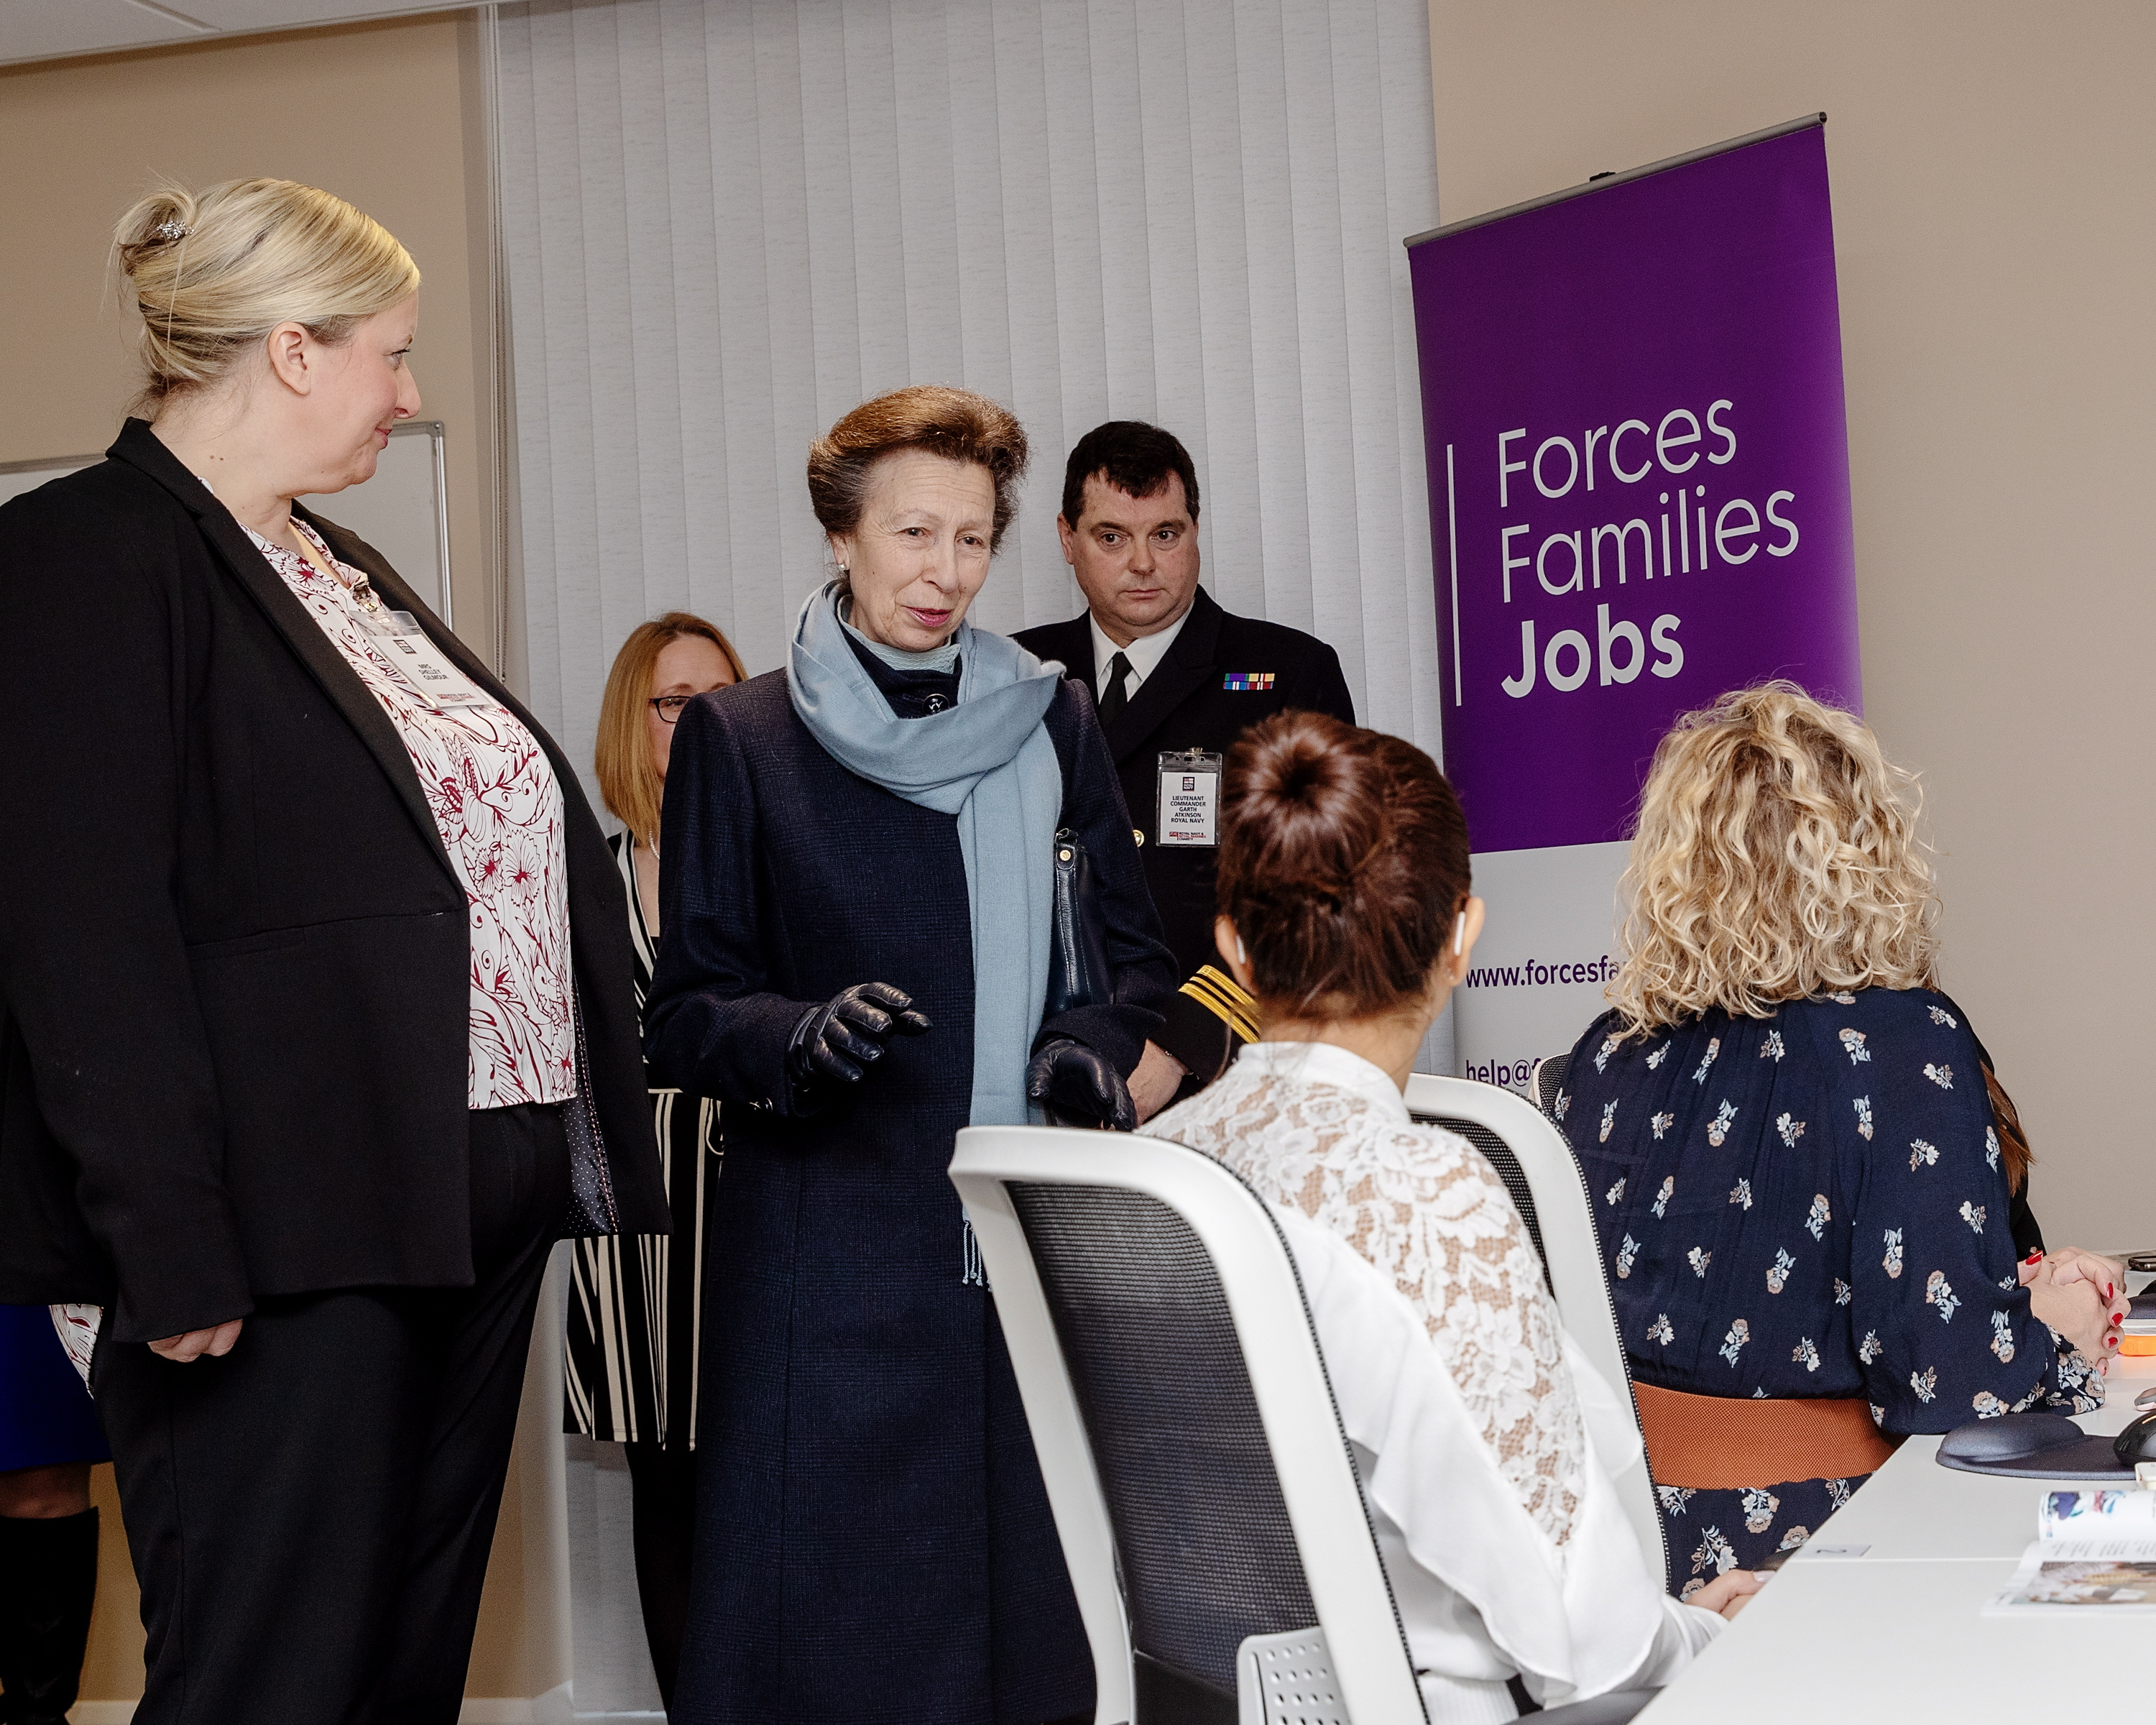 Princess Royal meets naval spouses